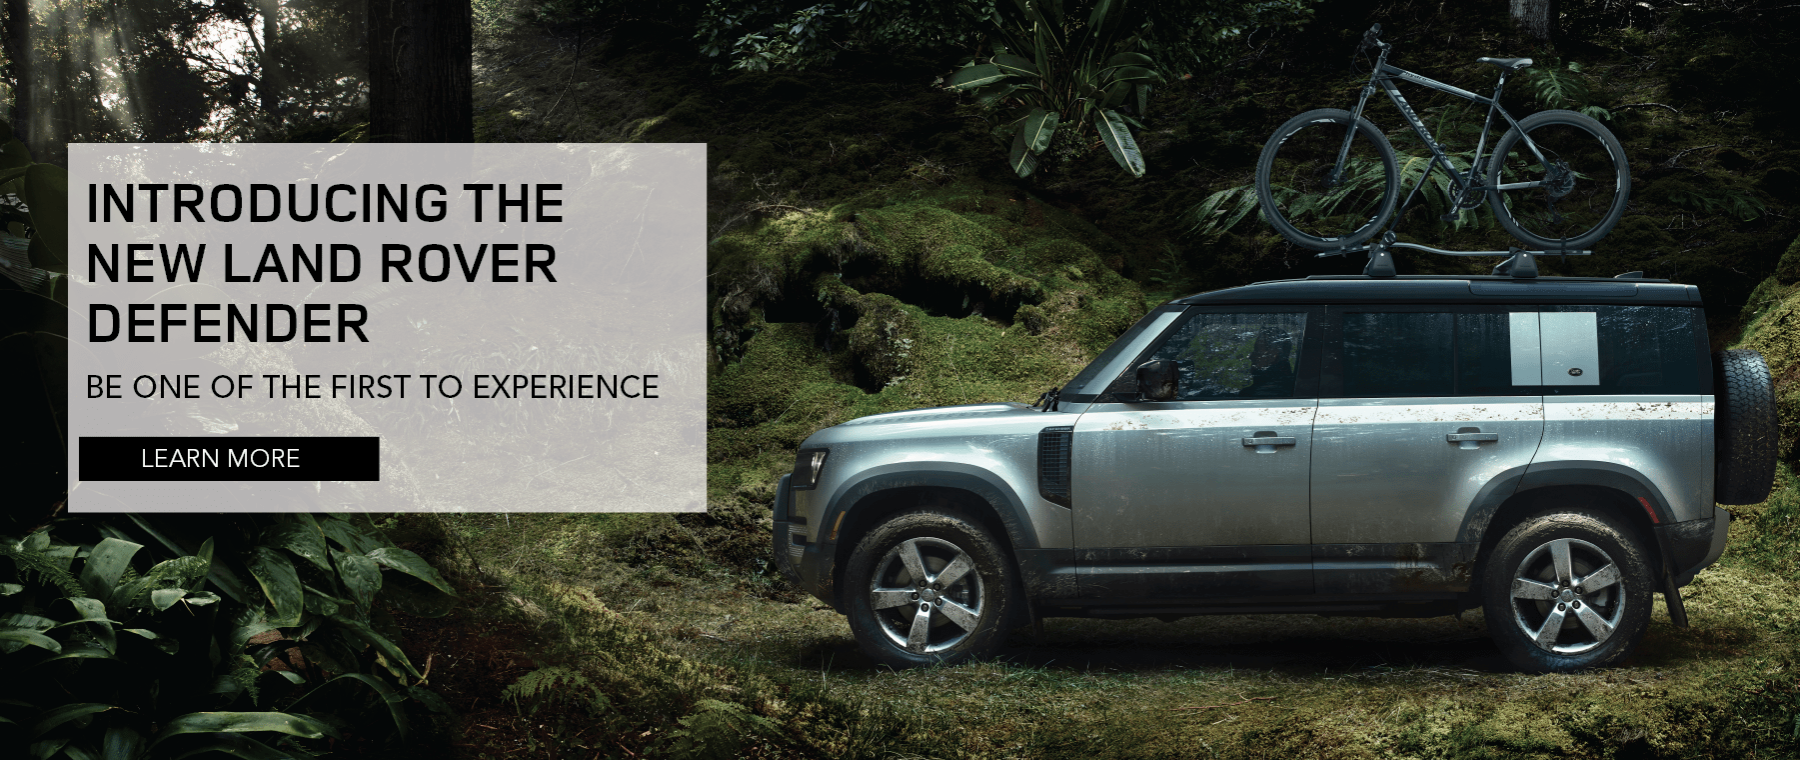 INTRODUCING THE NEW LAND ROVER DEFENDER. BE ONE OF THE FIRST TO EXPERIENCE. LEARN MORE. SILVER LAND ROVER DEFENDER 110 DRIVING THROUGH WOODS.